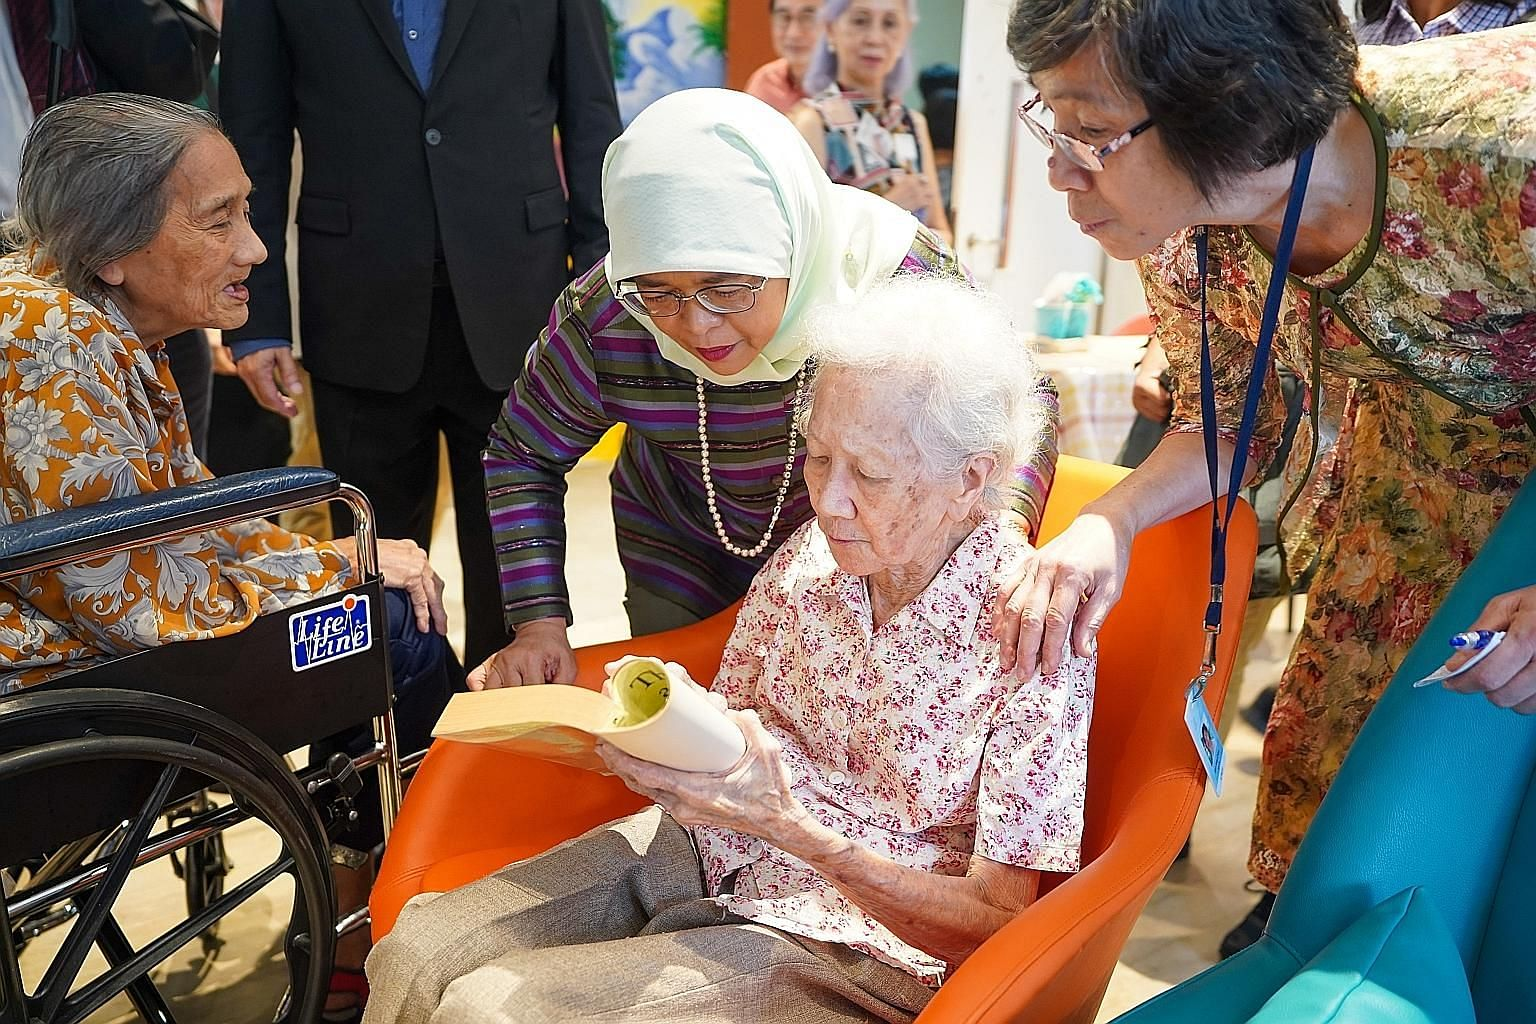 President Halimah Yacob checking out a book on dementia held up by Madam Mary Sng, a 92-year-old resident of Apex Harmony Lodge in Pasir Ris. Madam Halimah yesterday toured the premises of the long-term residential care facility for people with demen